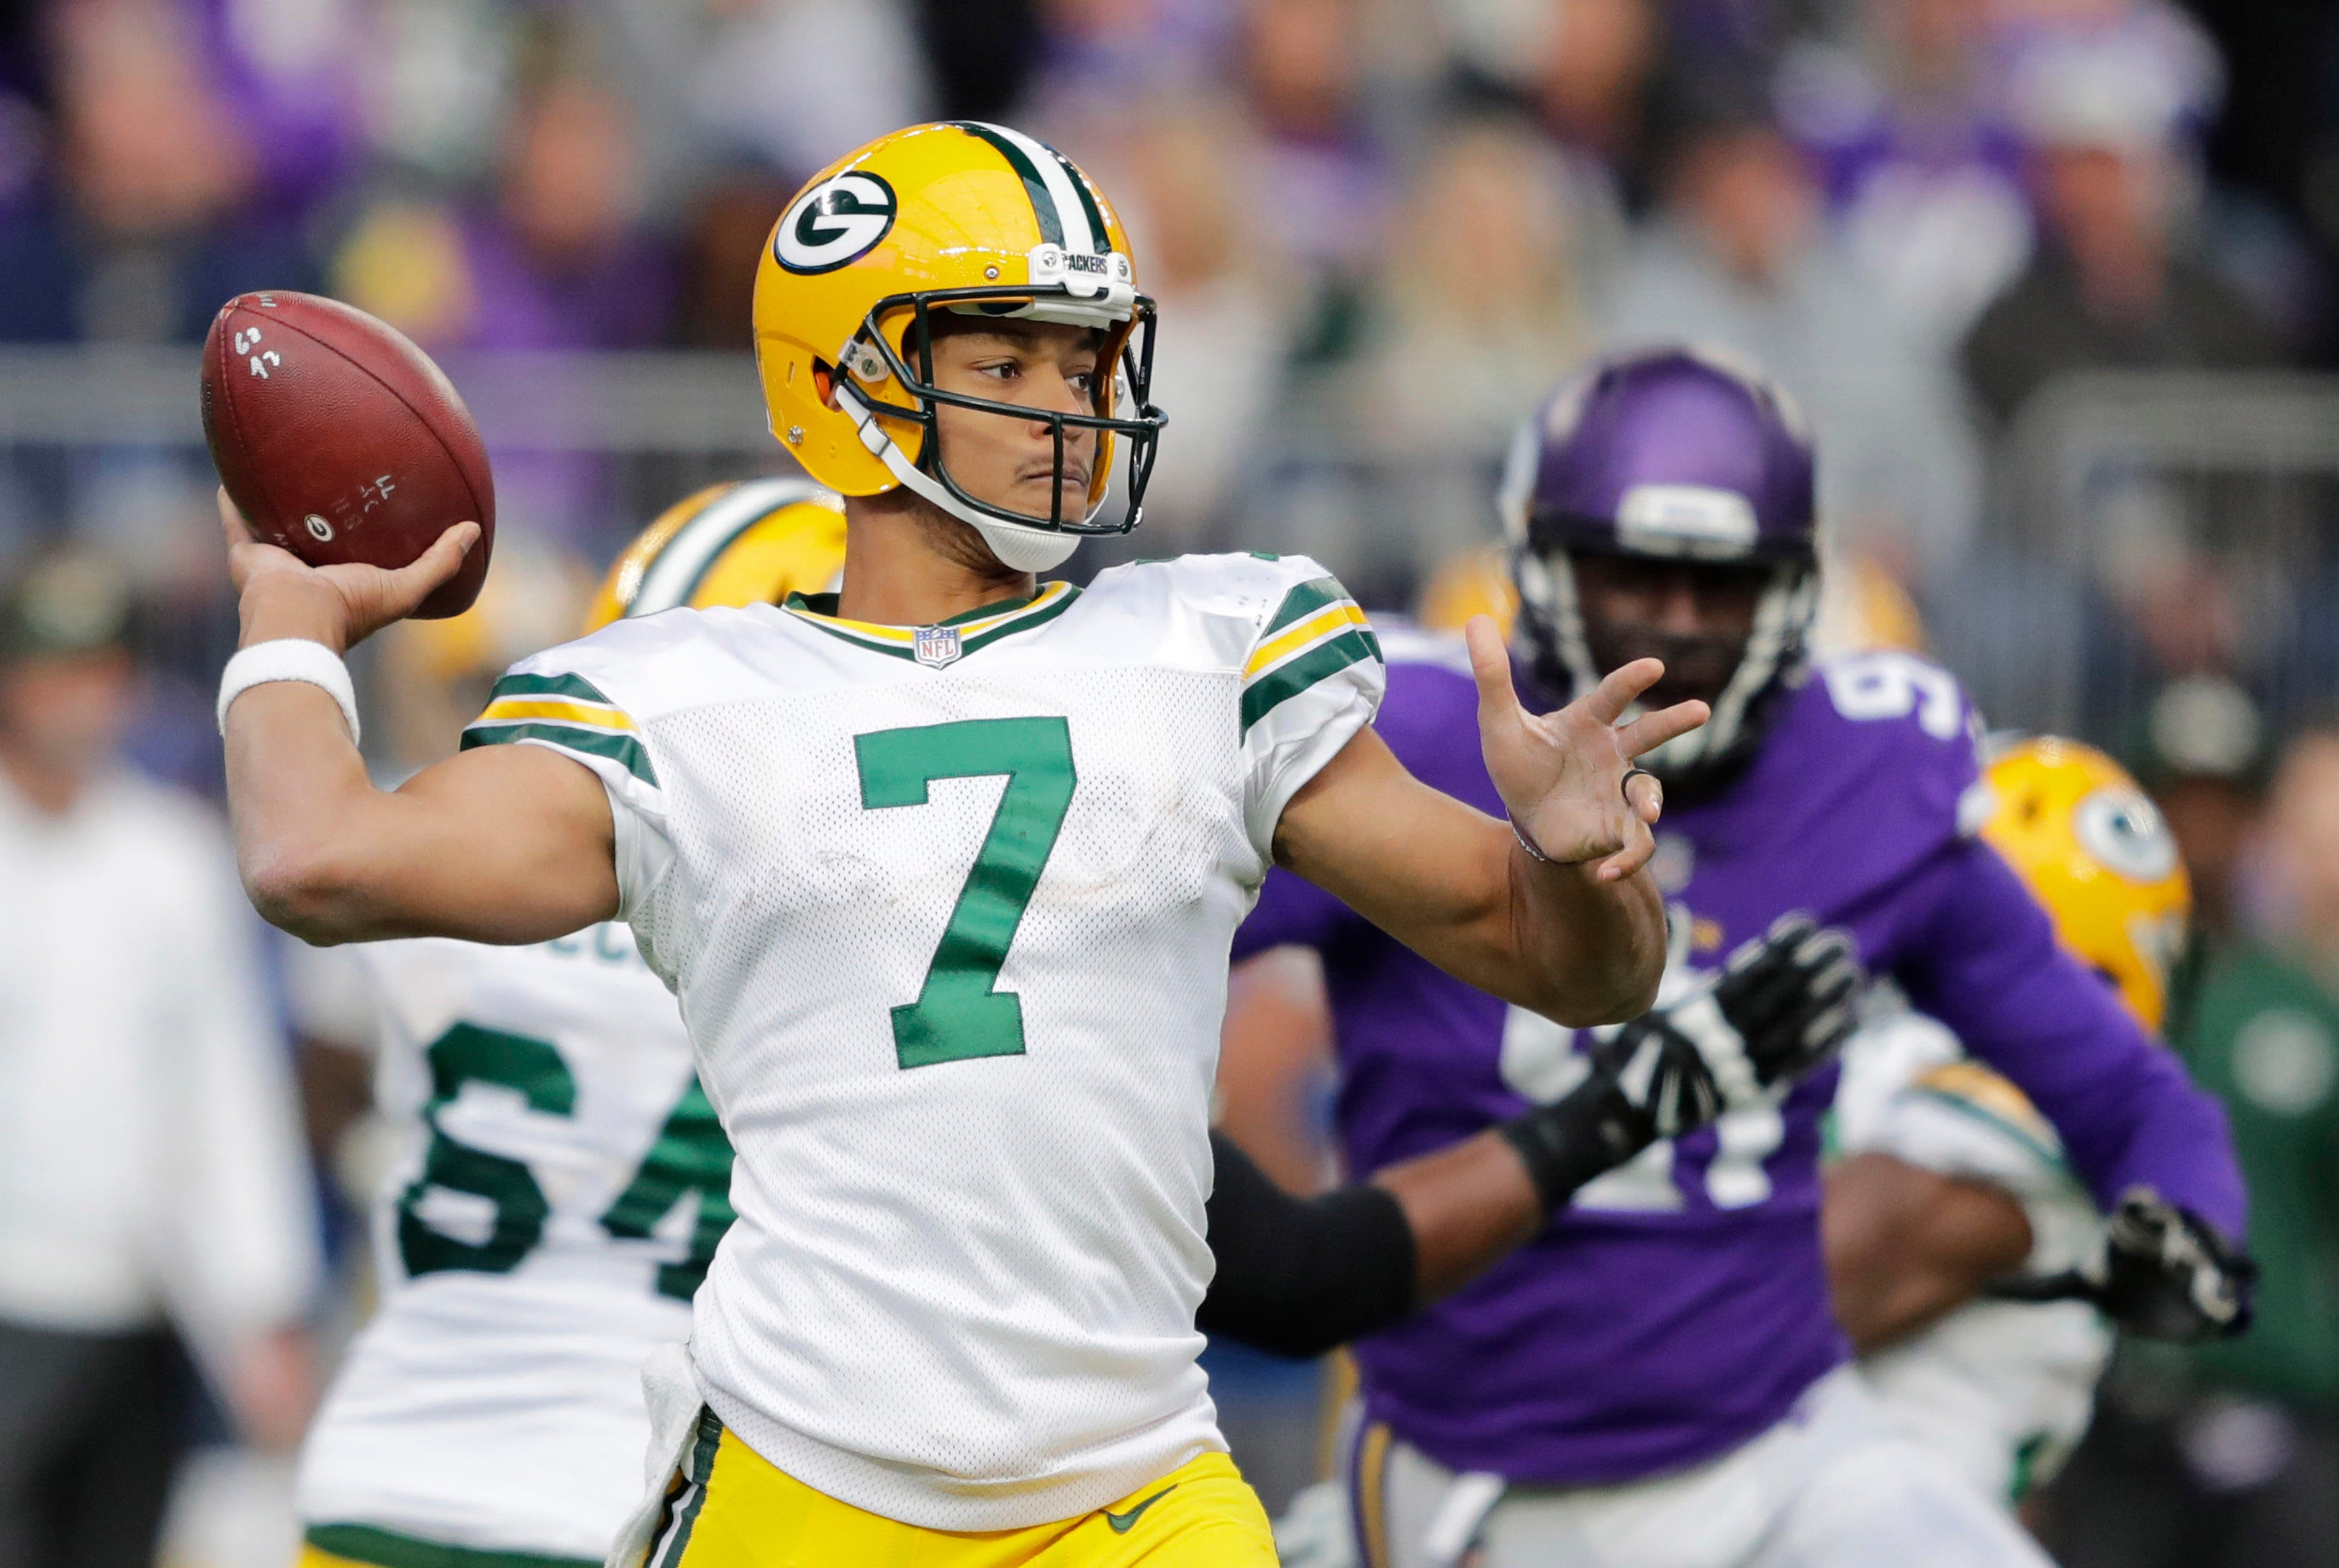 NFL Week 7 schedule: Brett Hundley gets first start, plus other things to watch